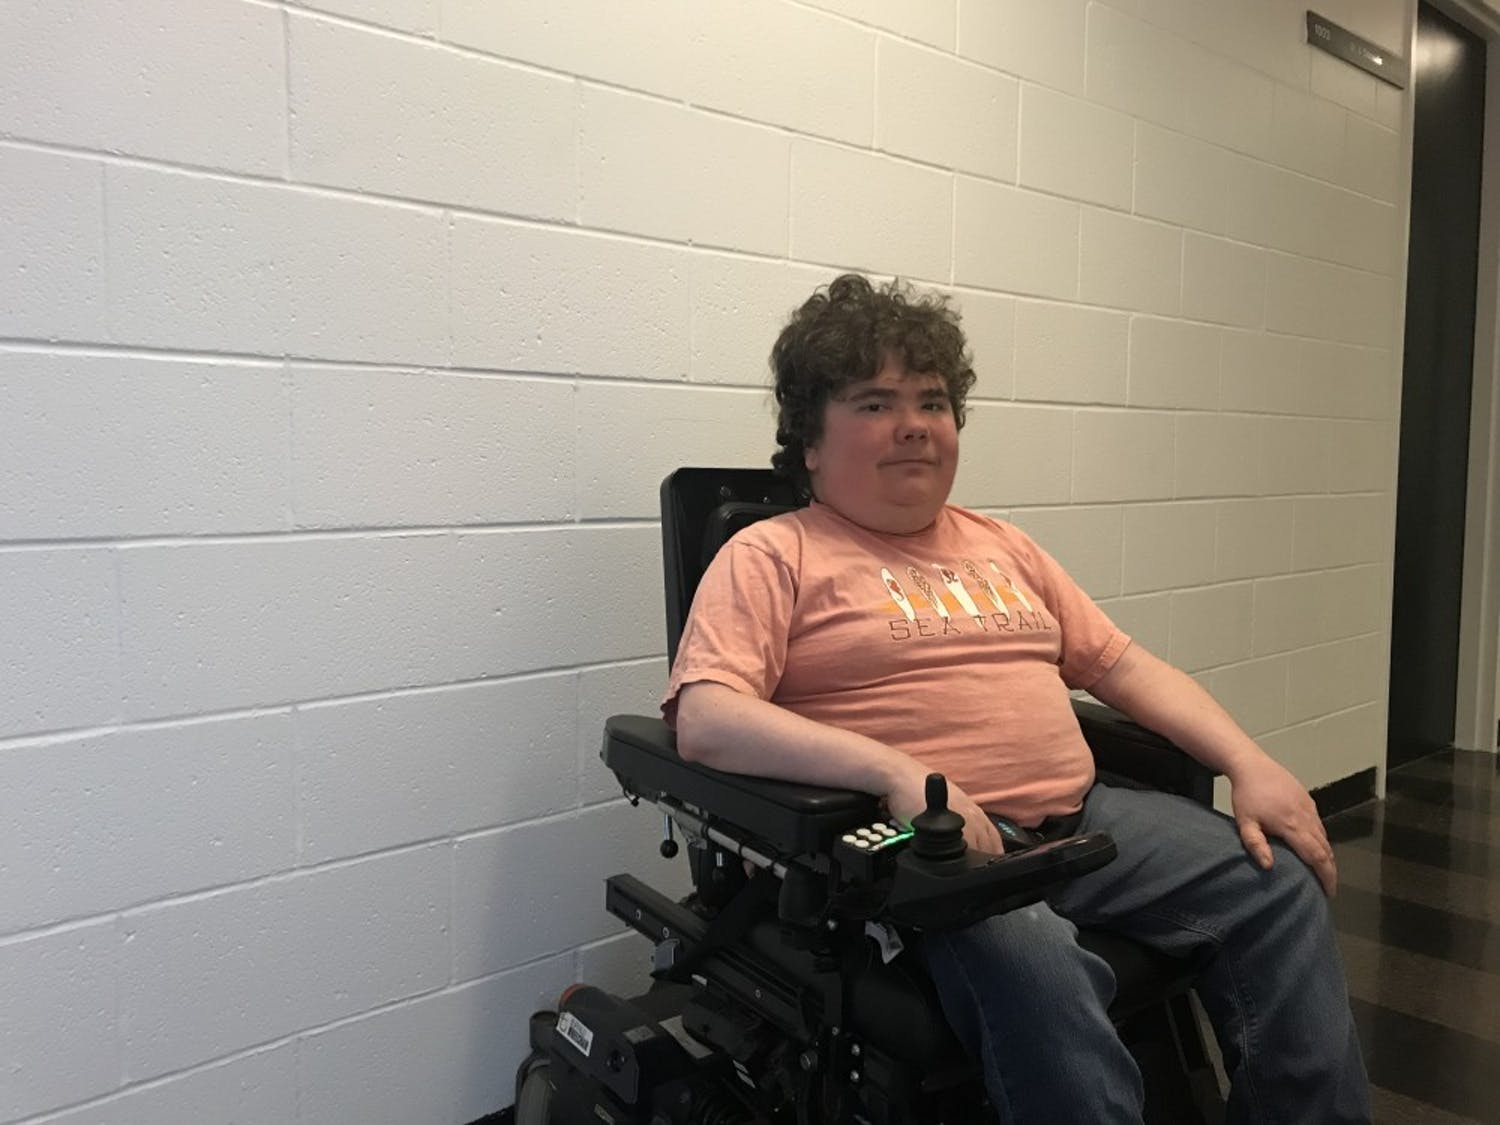 Graduate Student Zachary Dickman couldn't get into one of his classrooms last semester since the door was already closed and he couldn't get anyones attention inside.